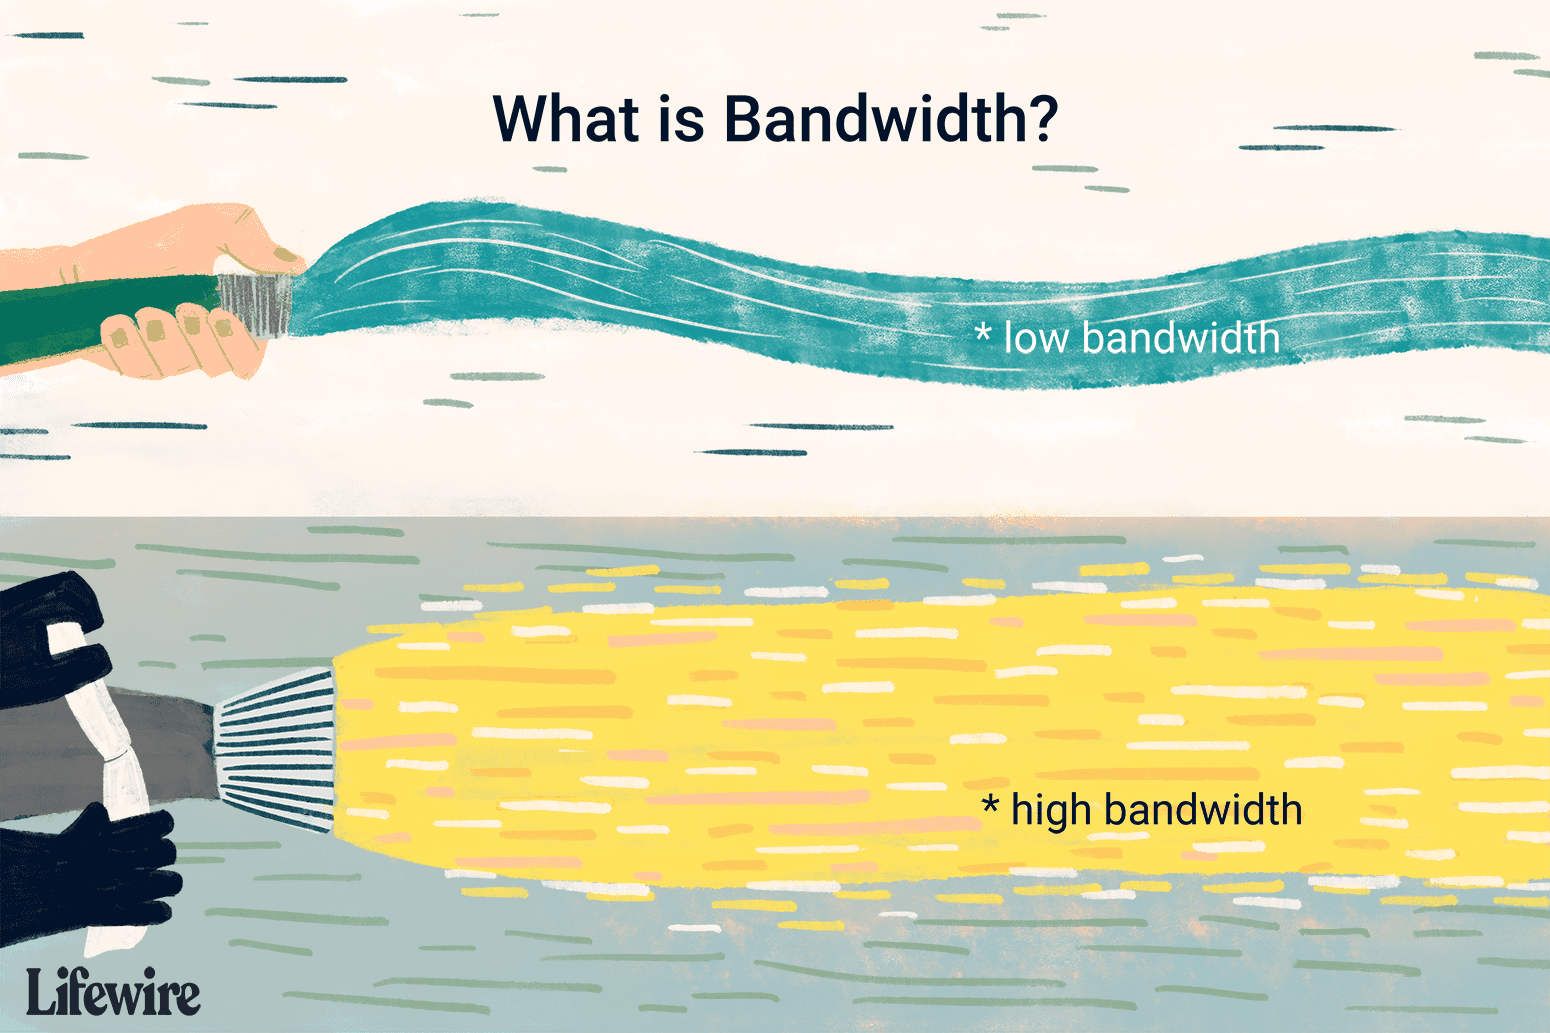 An illustration of the difference between high and low bandwidth